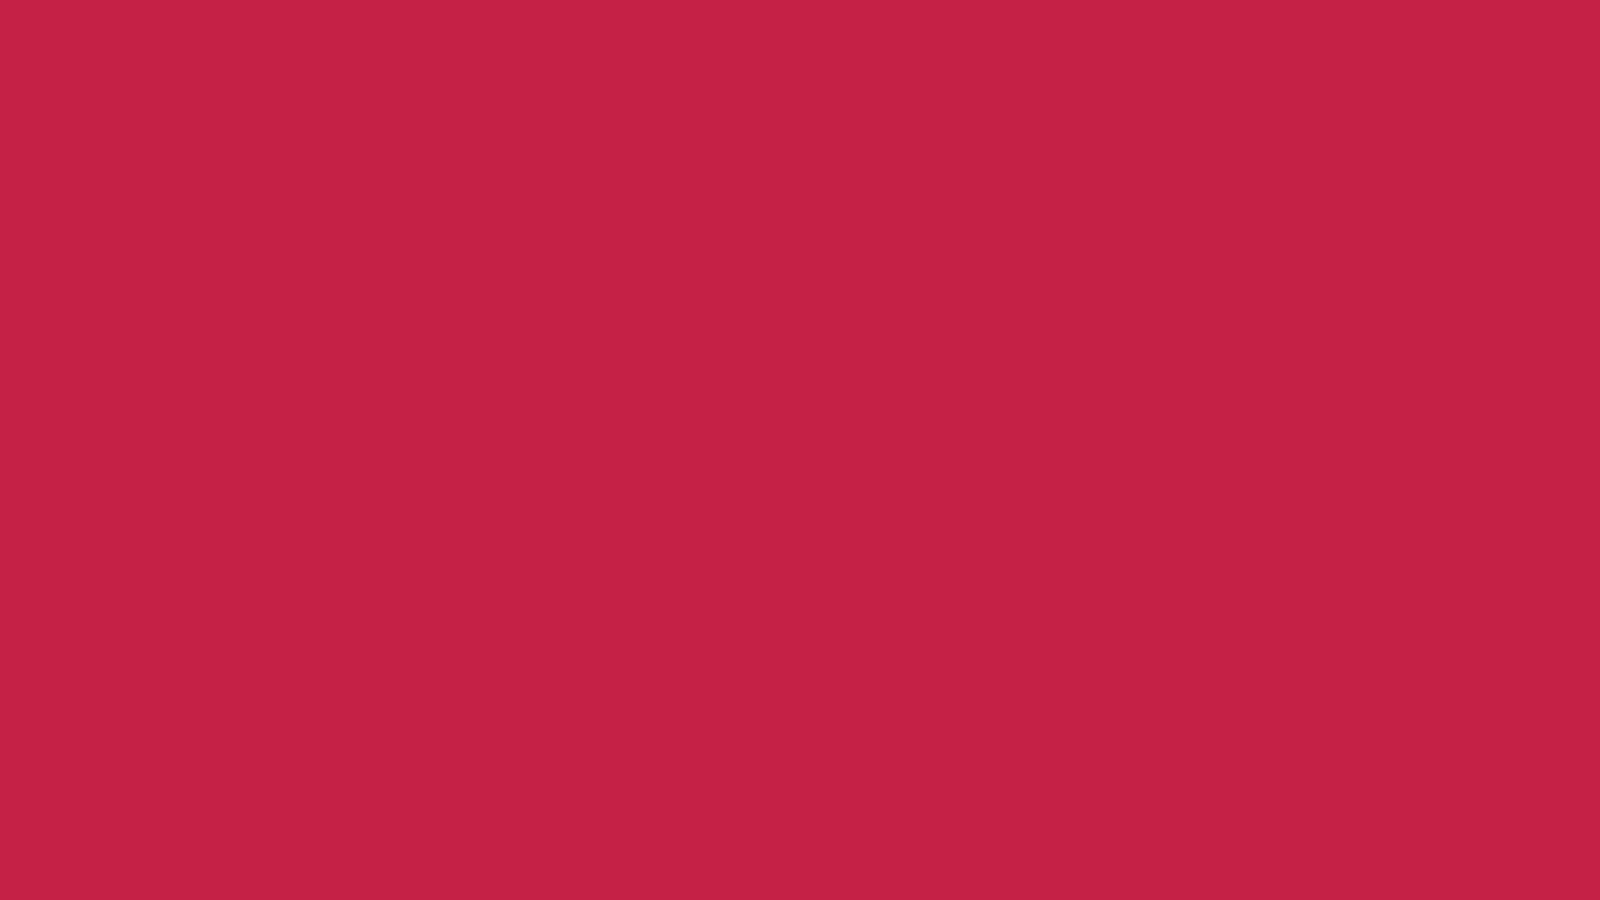 1600x900 Bright Maroon Solid Color Background